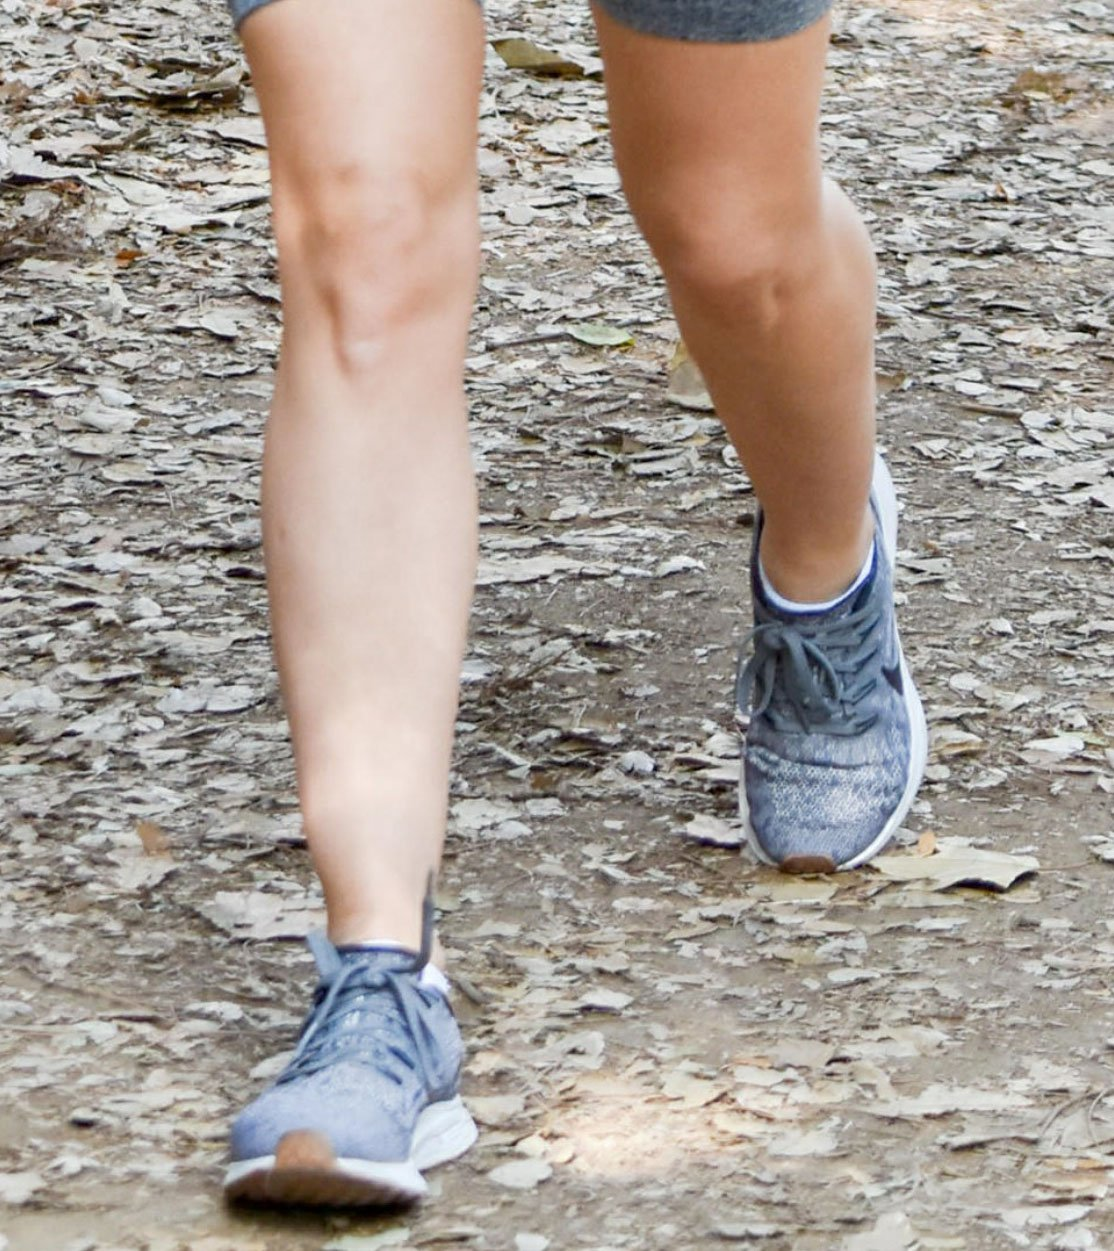 Lucy Hale wears the Nike Air Zoom Pegasus 36 for her trail hike